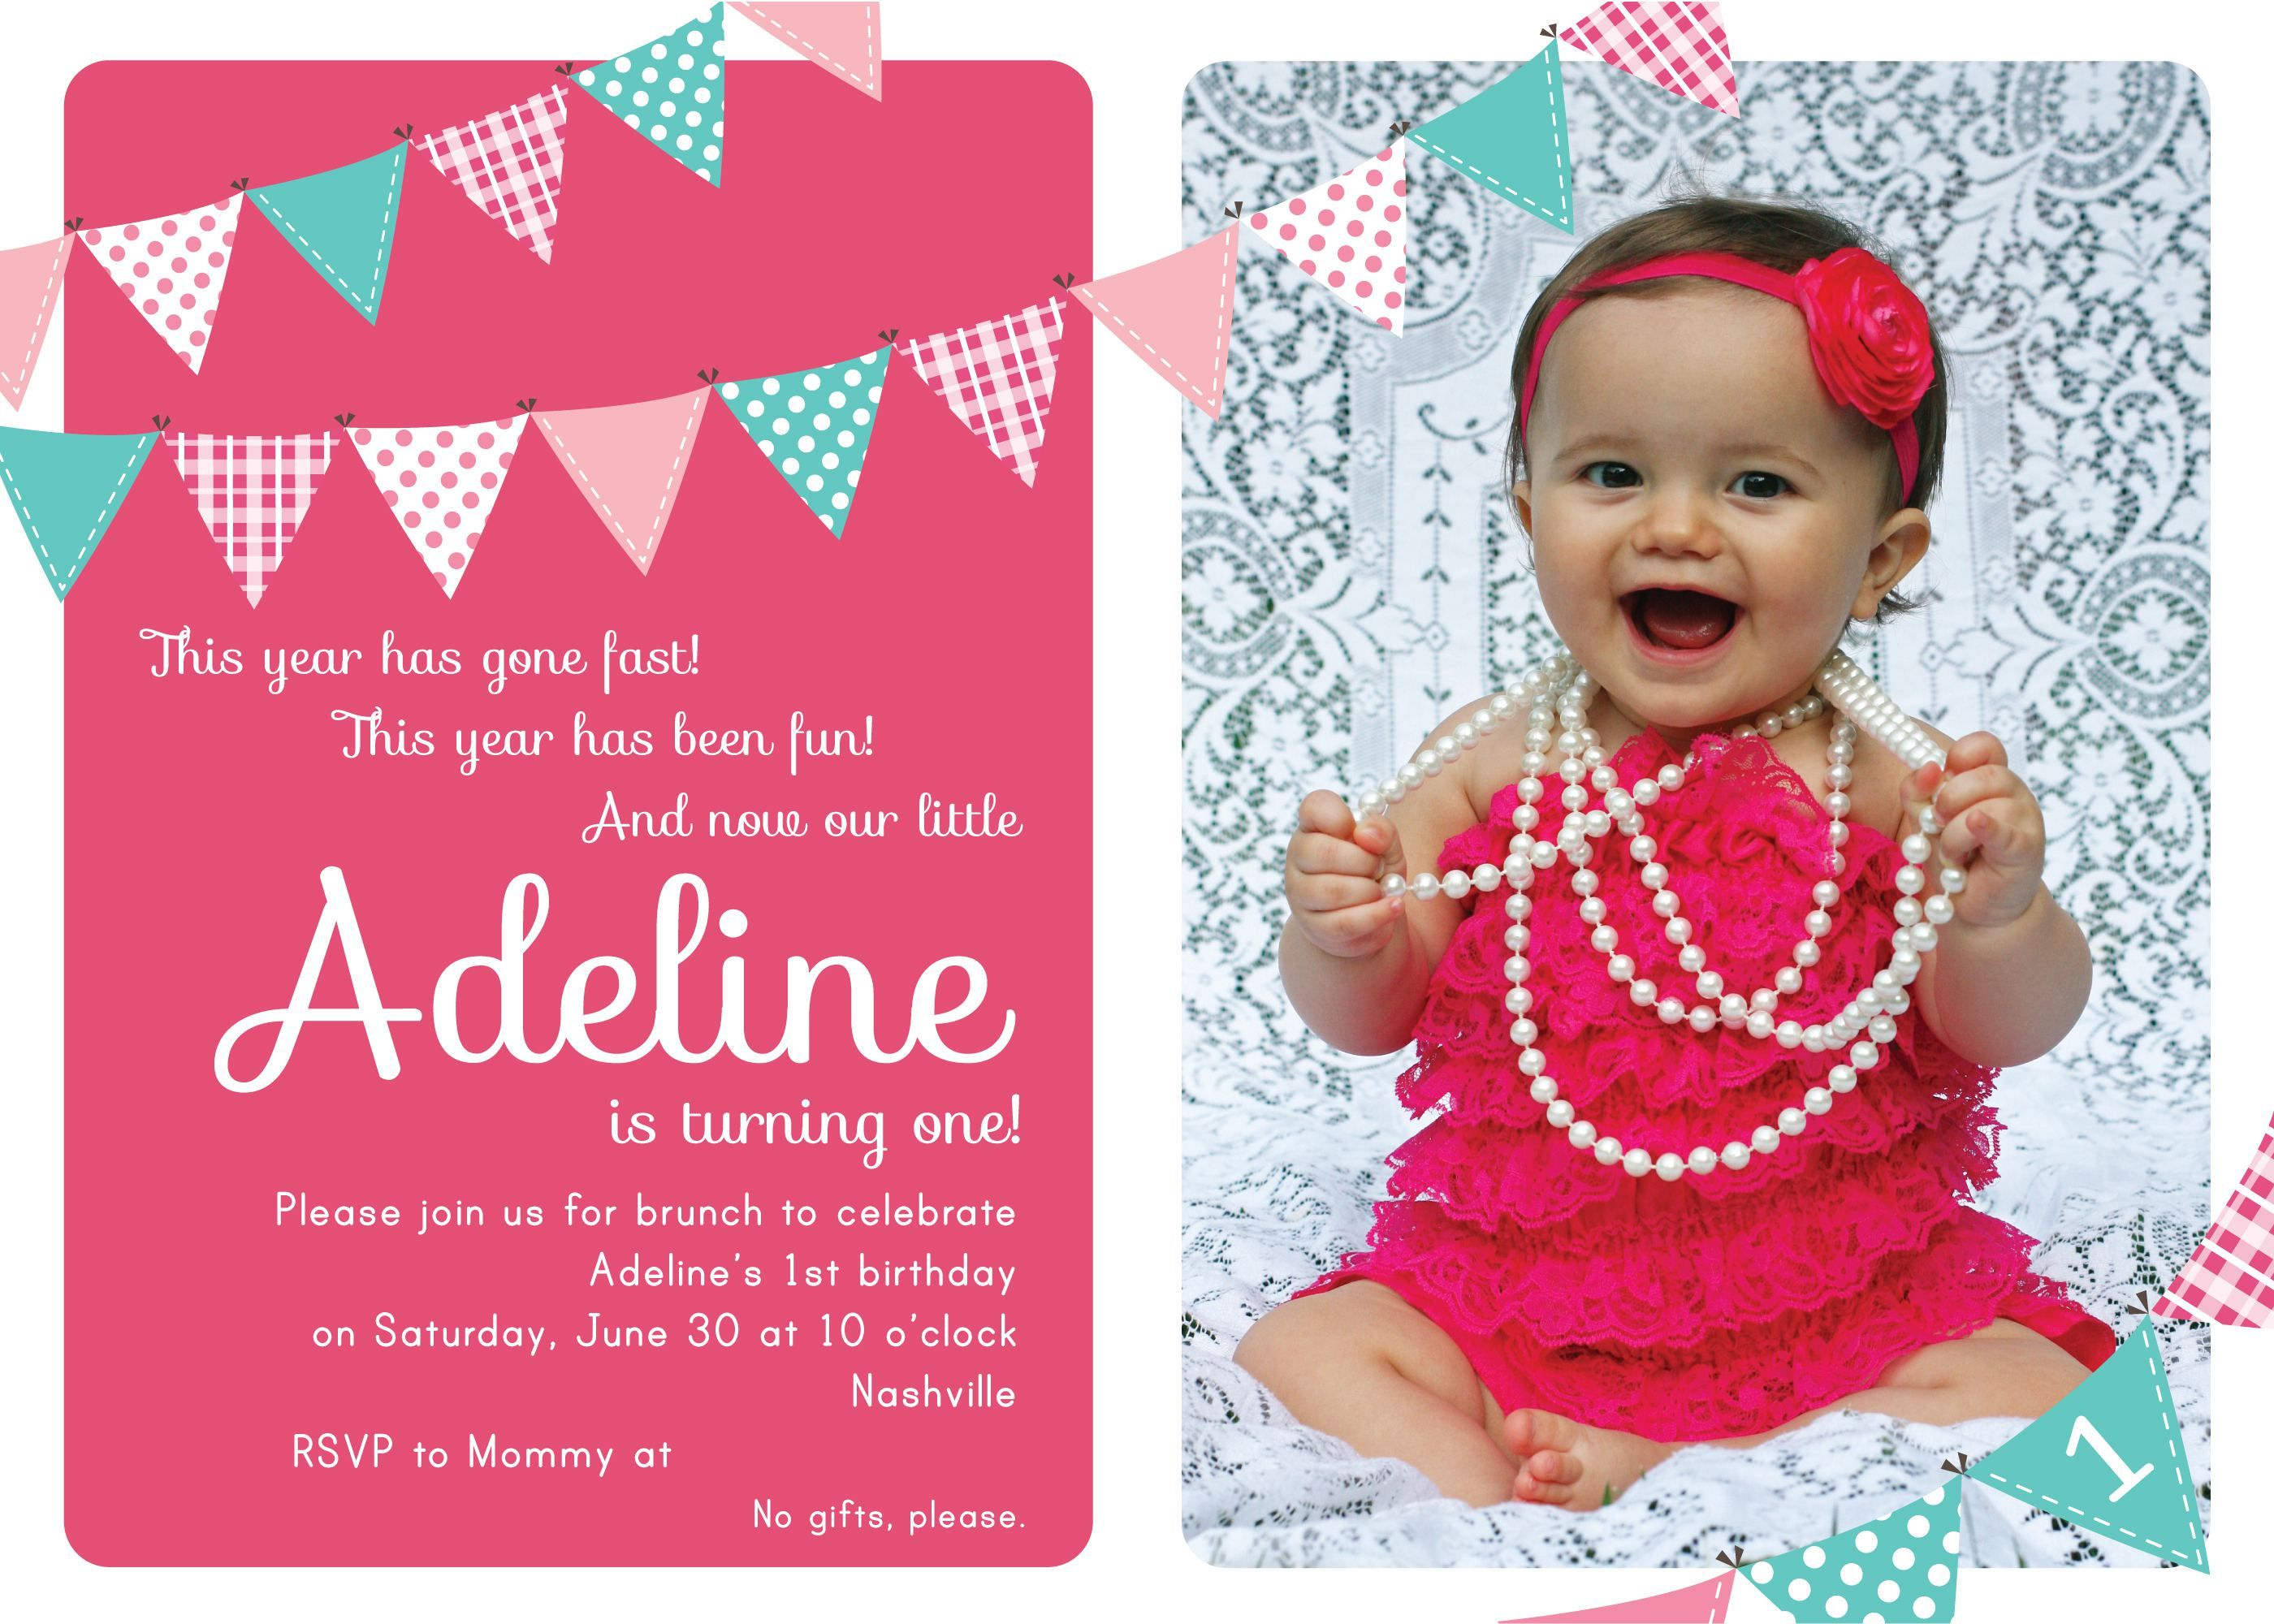 Baptisminvitationsamplewording Baptism Invitations - First birthday invitations girl online